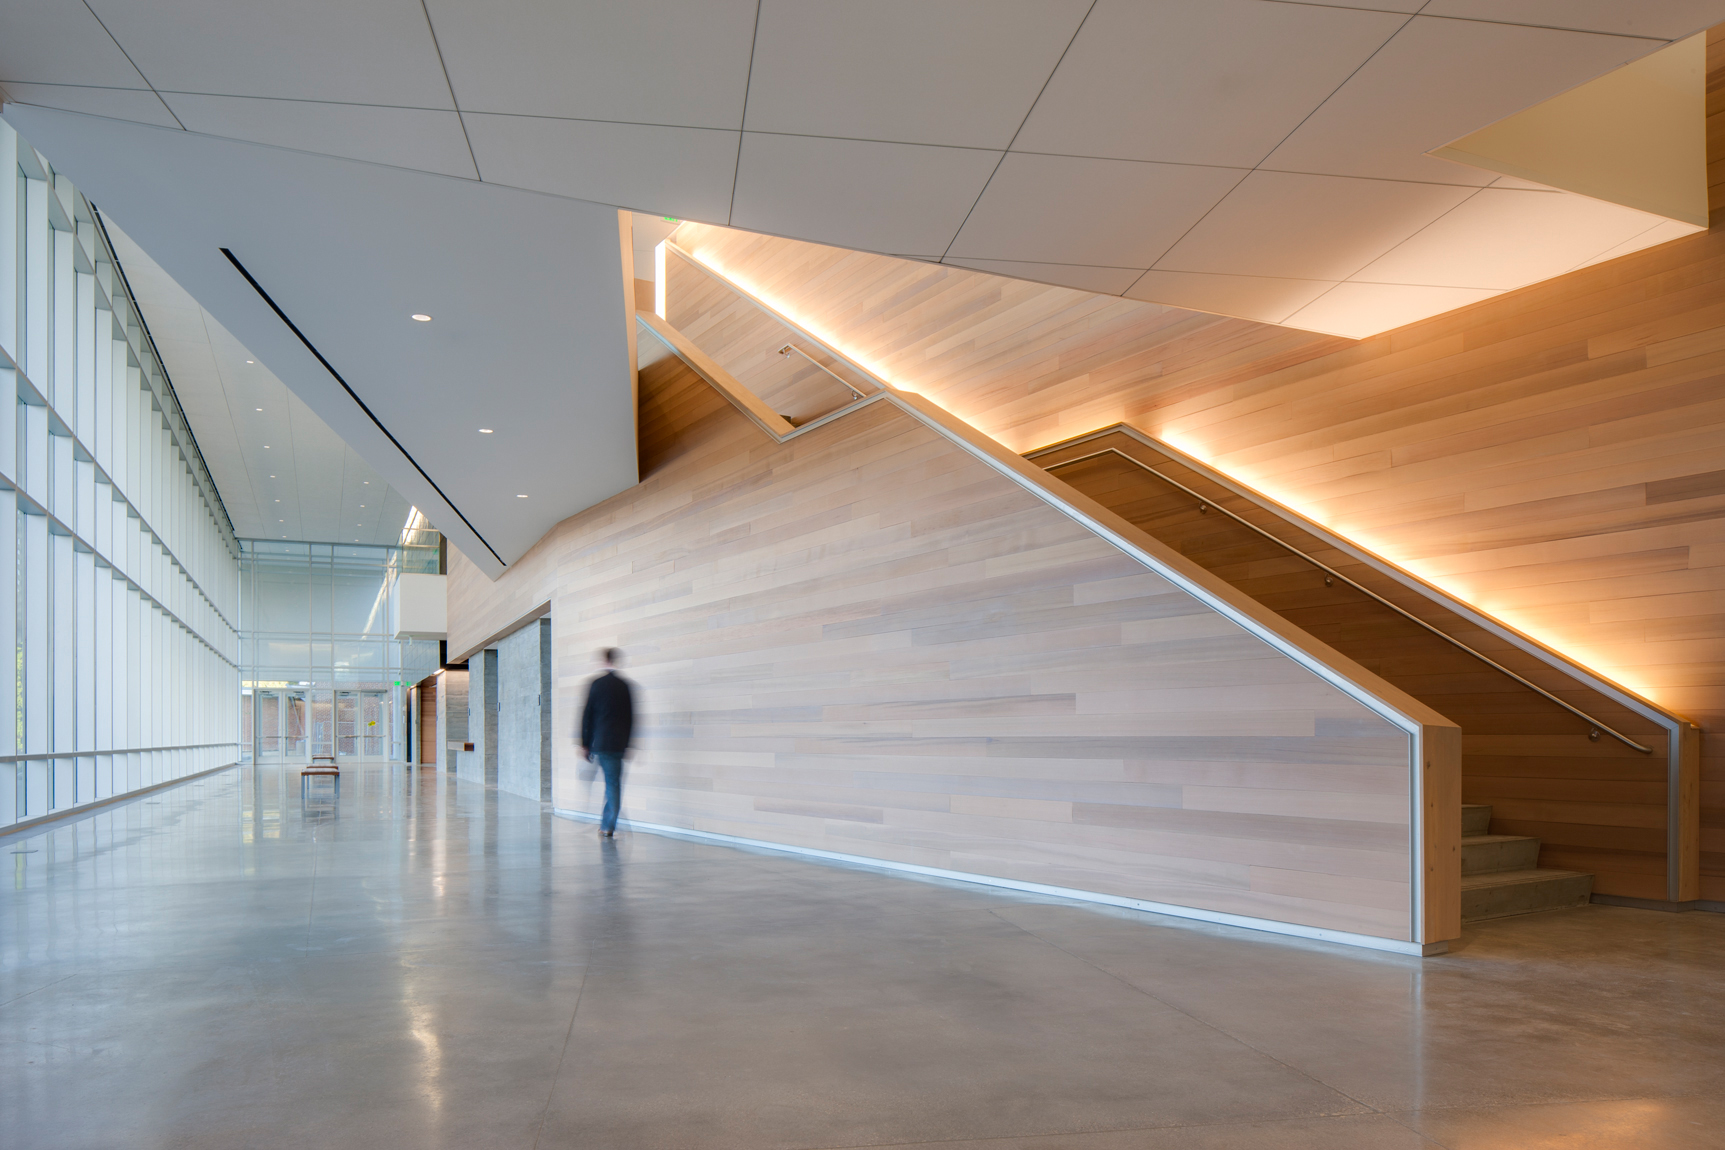 Motion blur of man walking down well lit corridor with large glass windows and sleek wooden stairwell